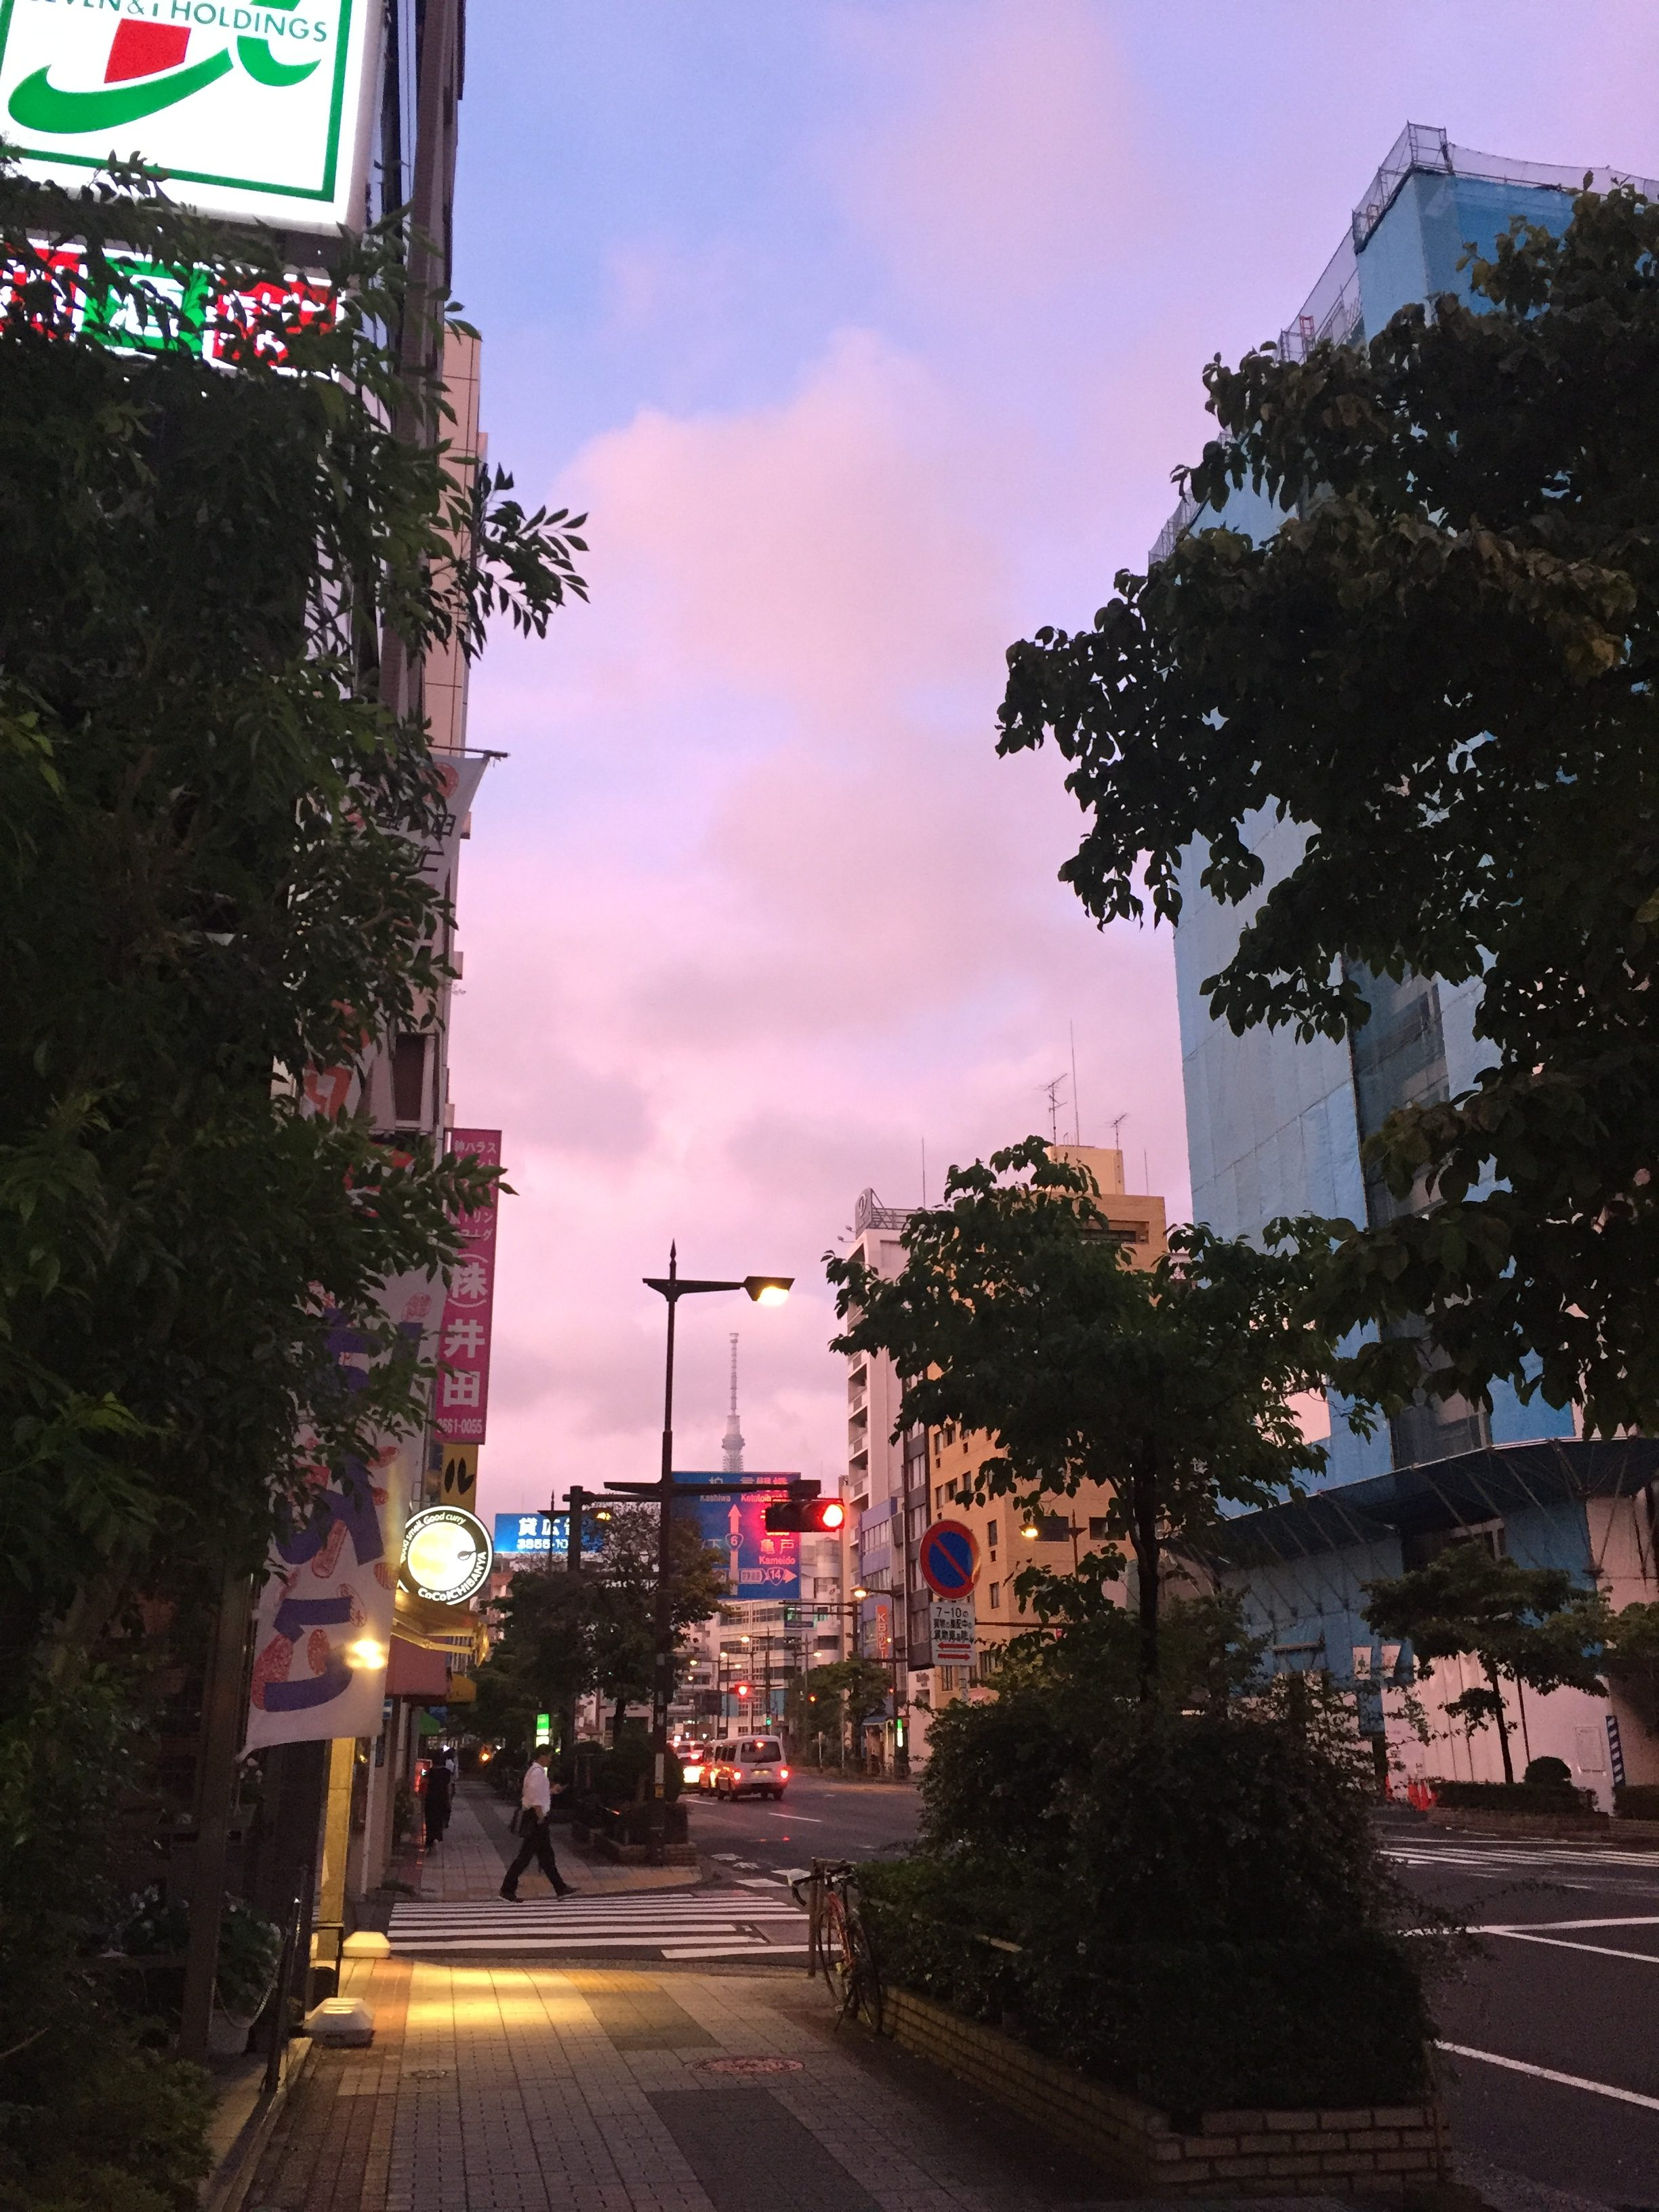 A photo of a city street at sunrise, with a light pink and blue sky.